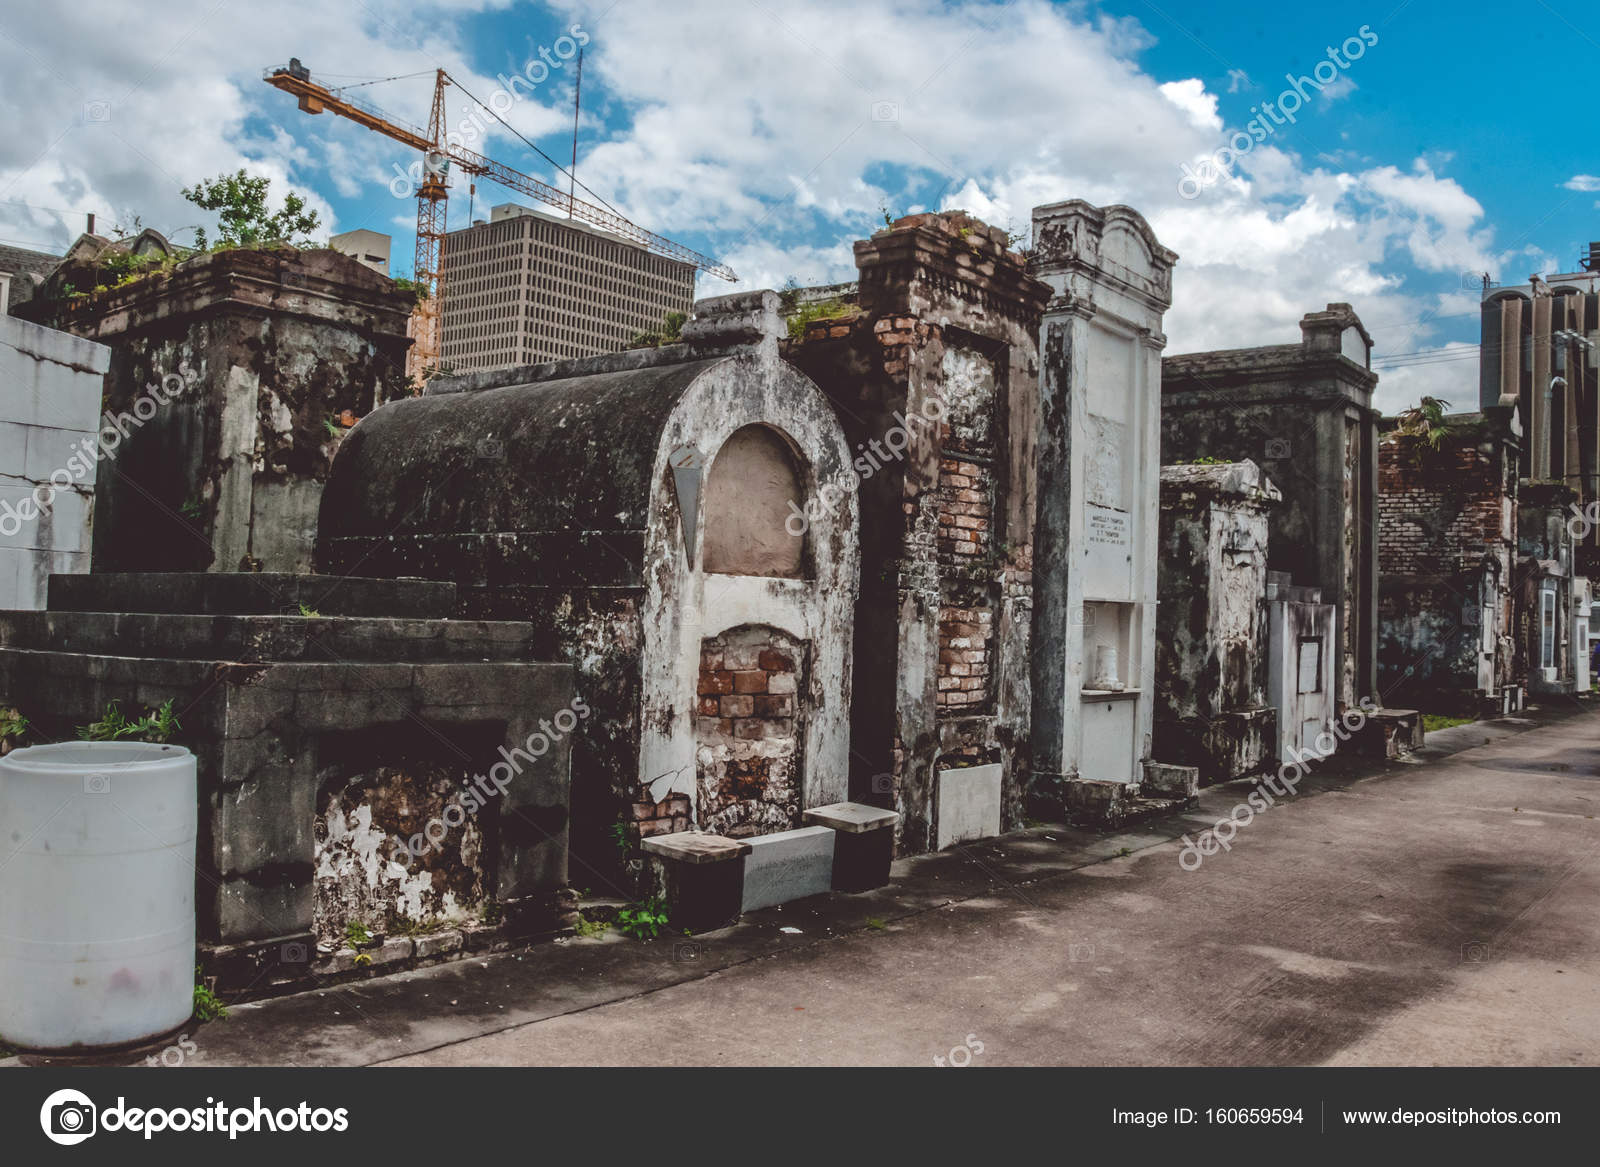 Majestic ancient graves of St  Louis cemetery in New Orleans